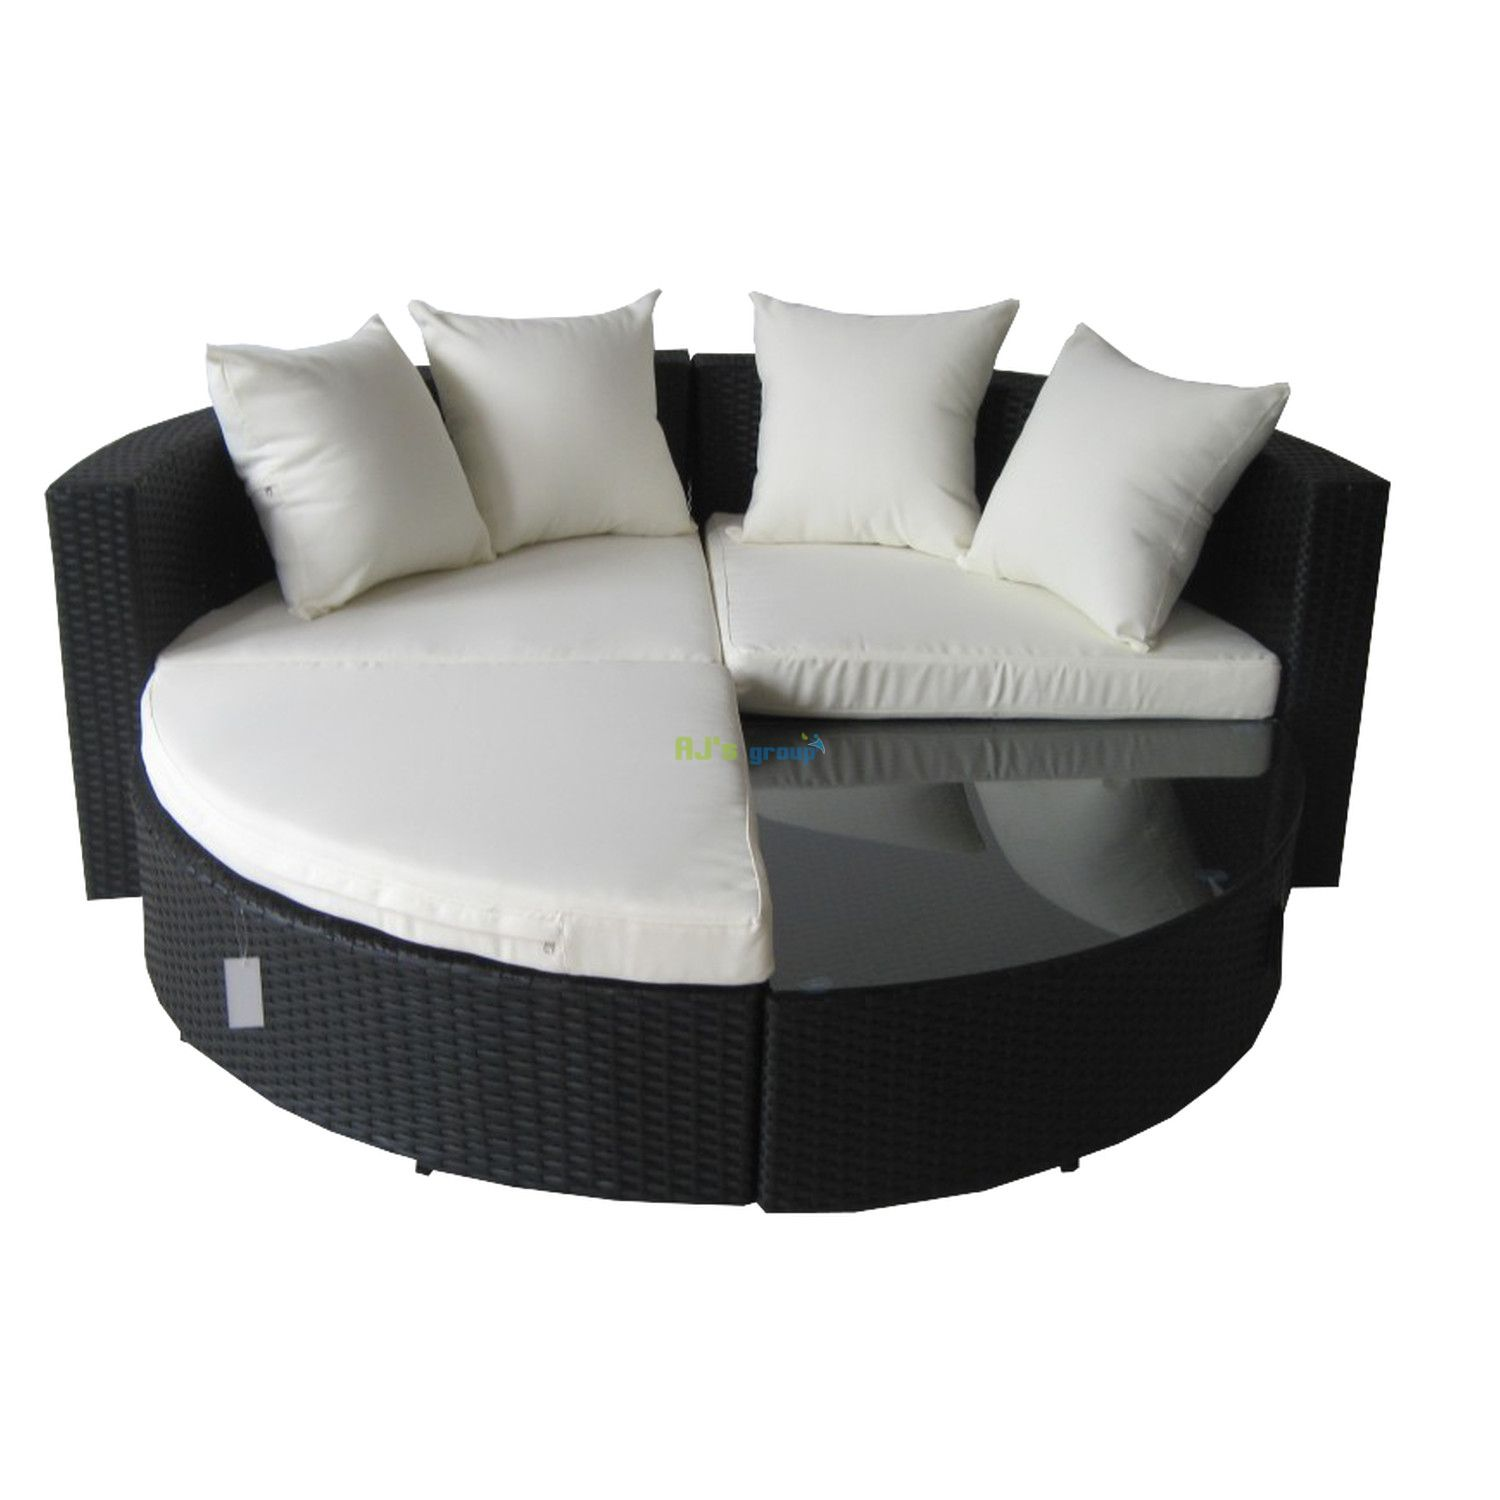 gartenmobel rattan lounge insel. Black Bedroom Furniture Sets. Home Design Ideas